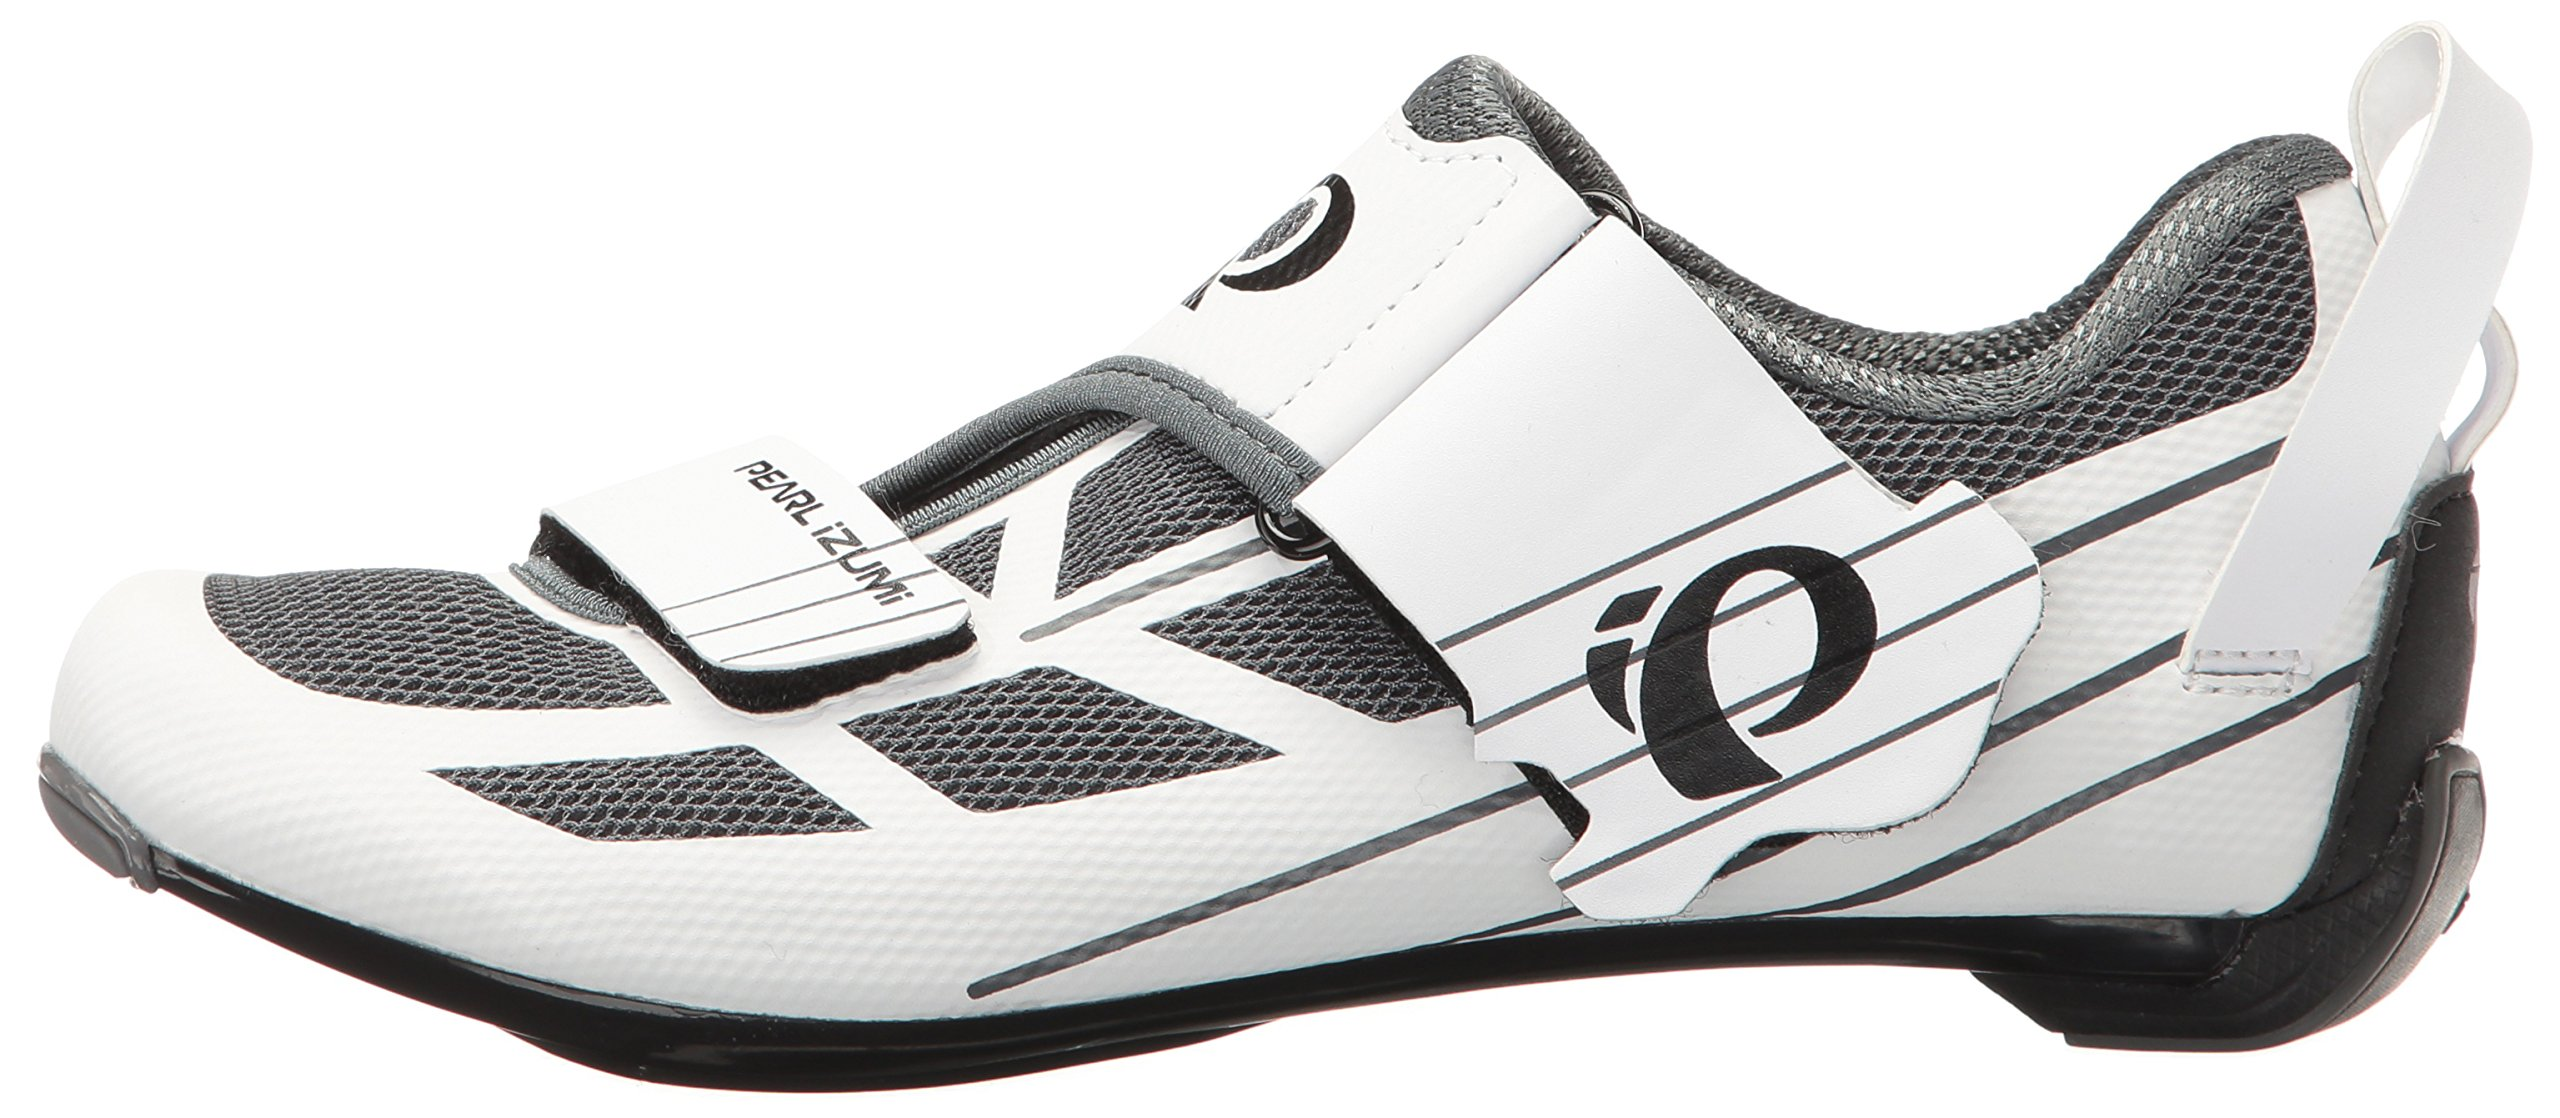 Pearl iZUMi Women's W Tri Fly Select V6 Cycling Shoe, White/Shadow Grey, 42 EU/10 B US by Pearl iZUMi (Image #5)